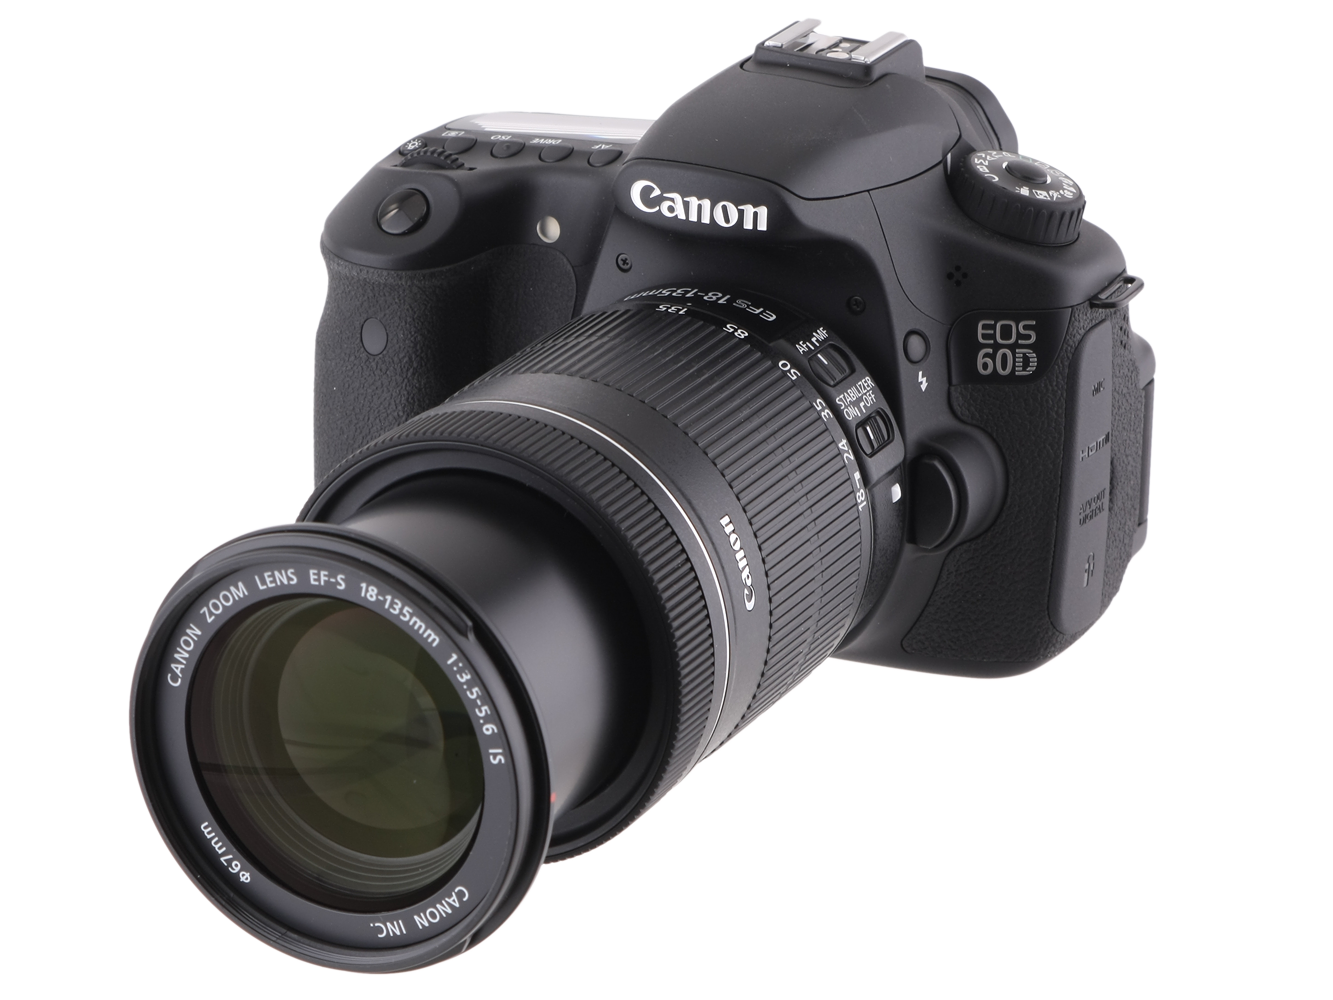 Canon EOS 60D (with 18-135mm lens)